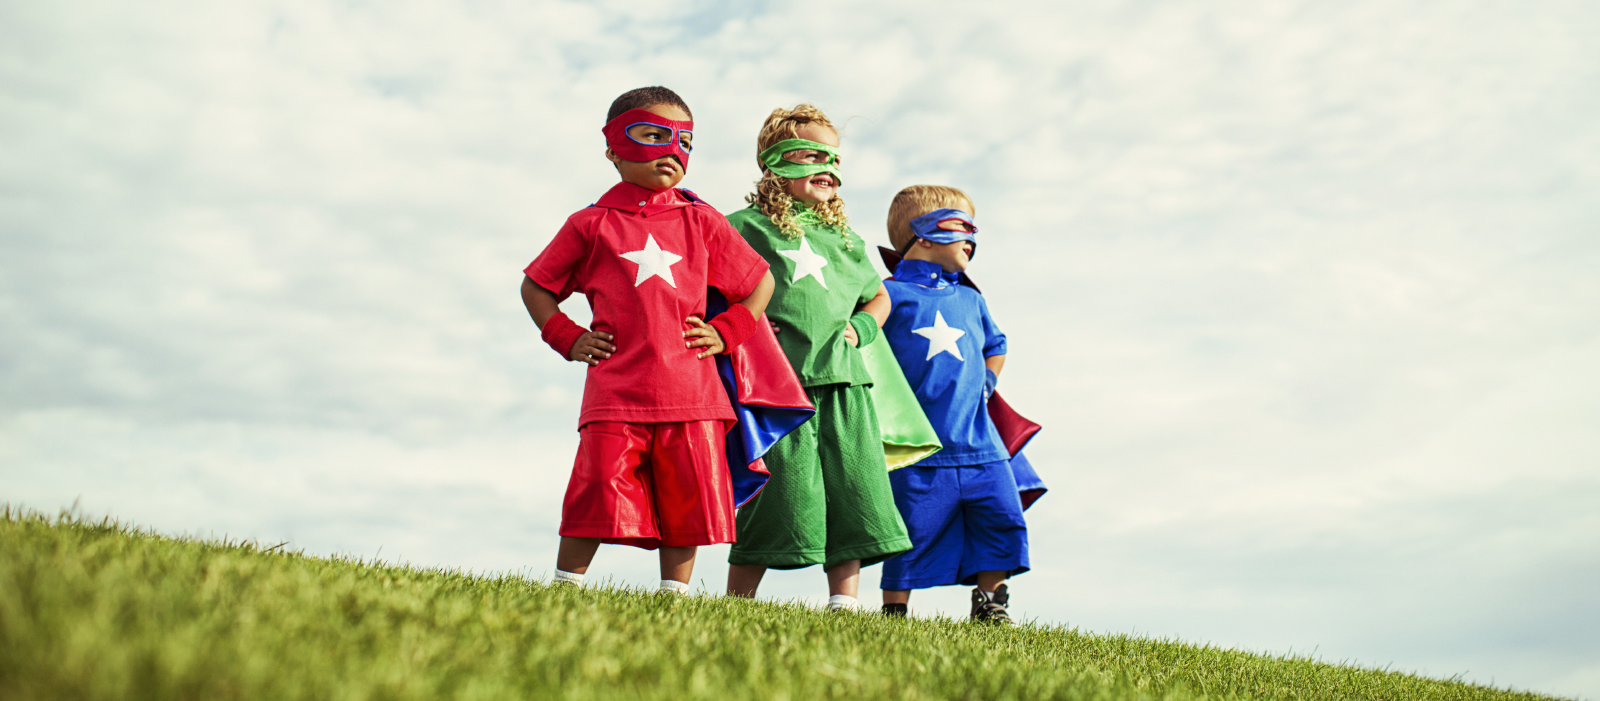 Welcome to the era of the sales superhero